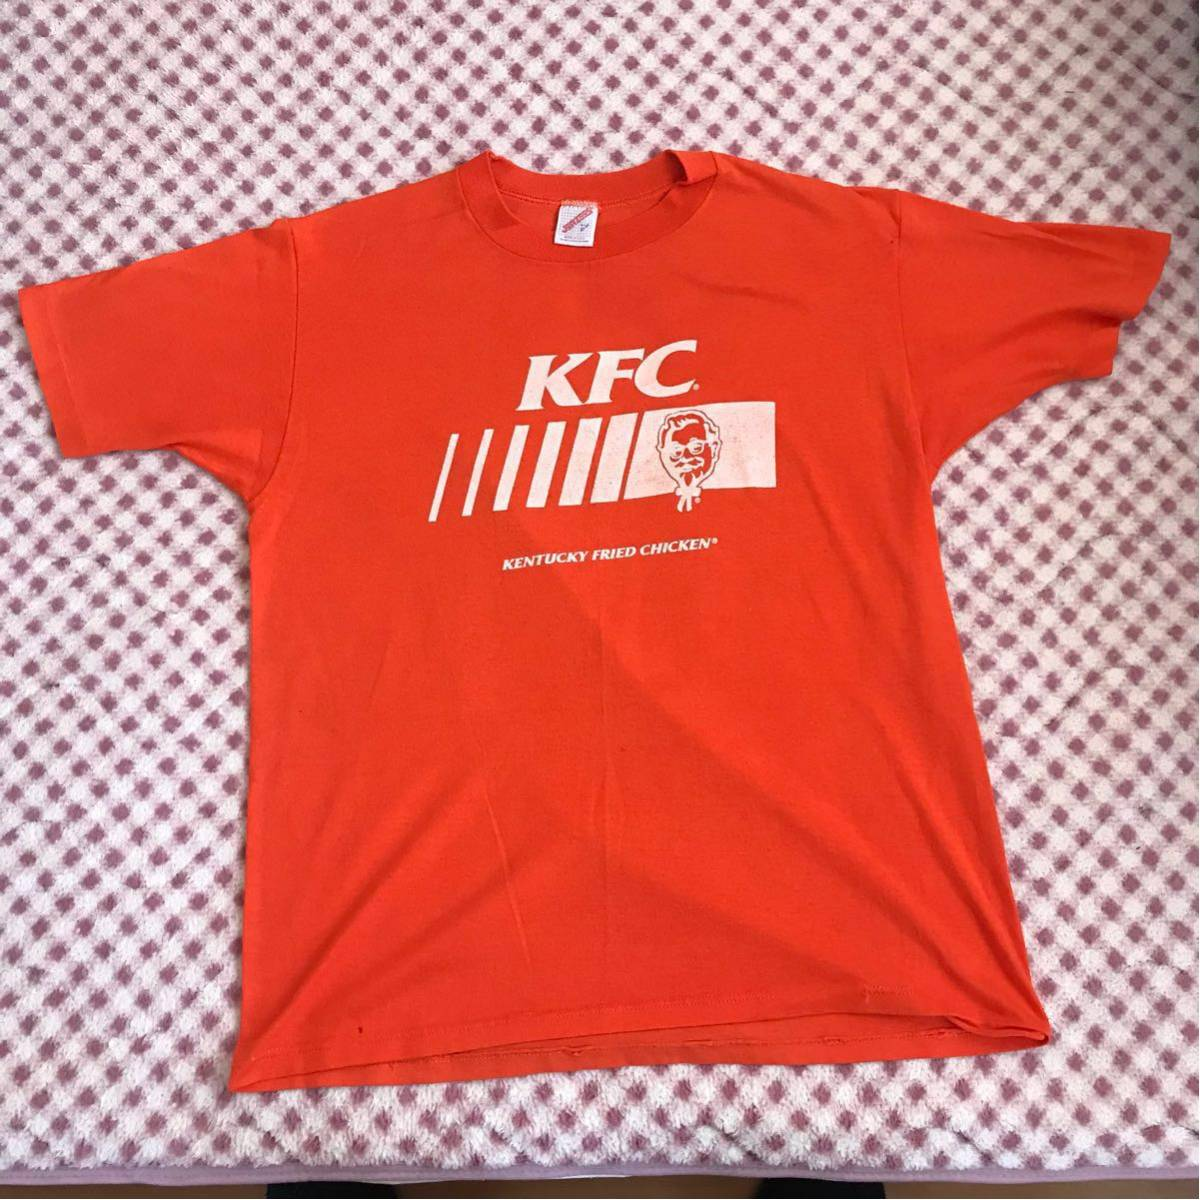 Made in the USA KFC Kentucky Fried Chicken T-shirt(L)